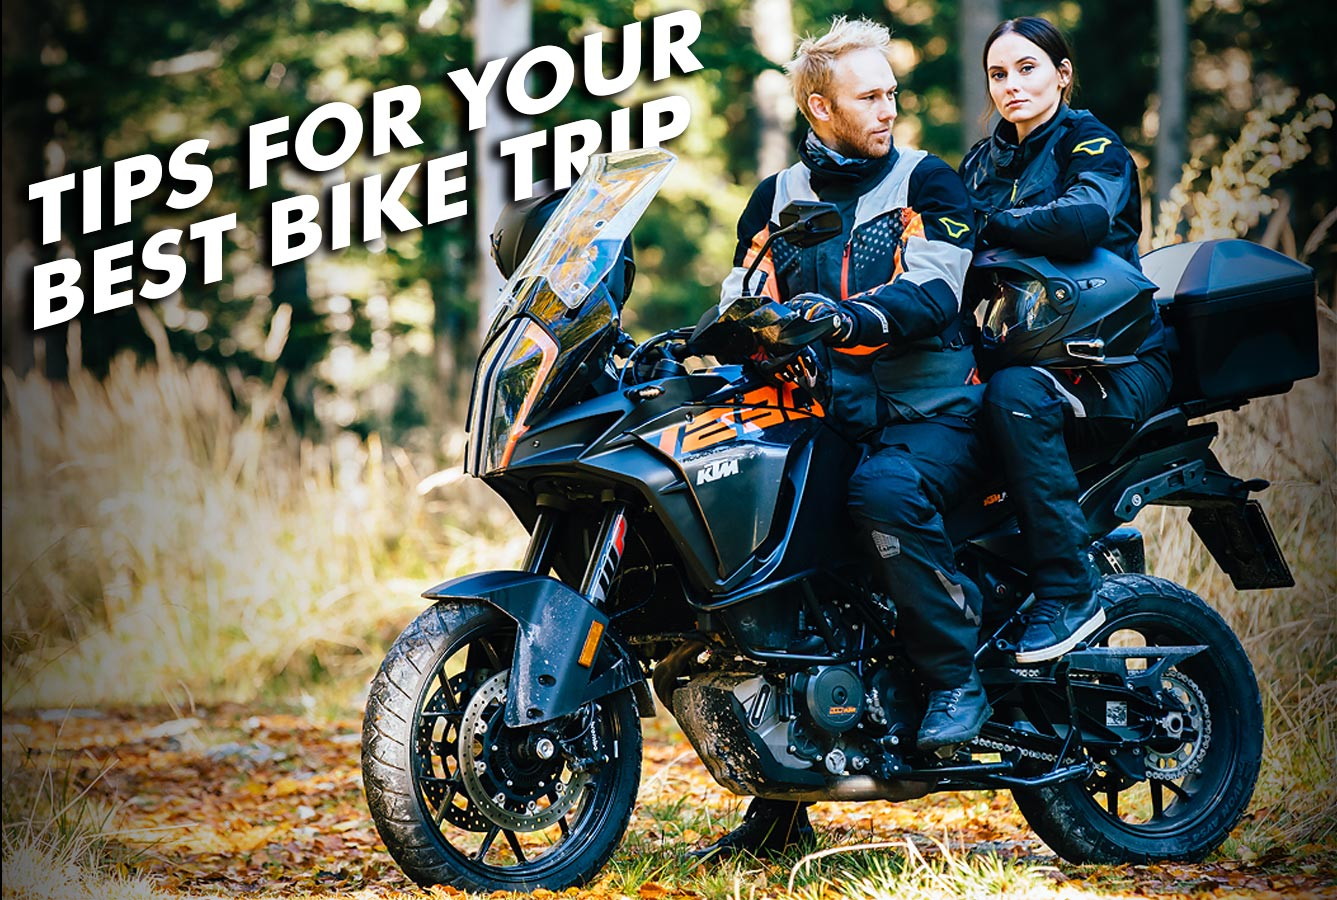 Tips for a perfect bike trip